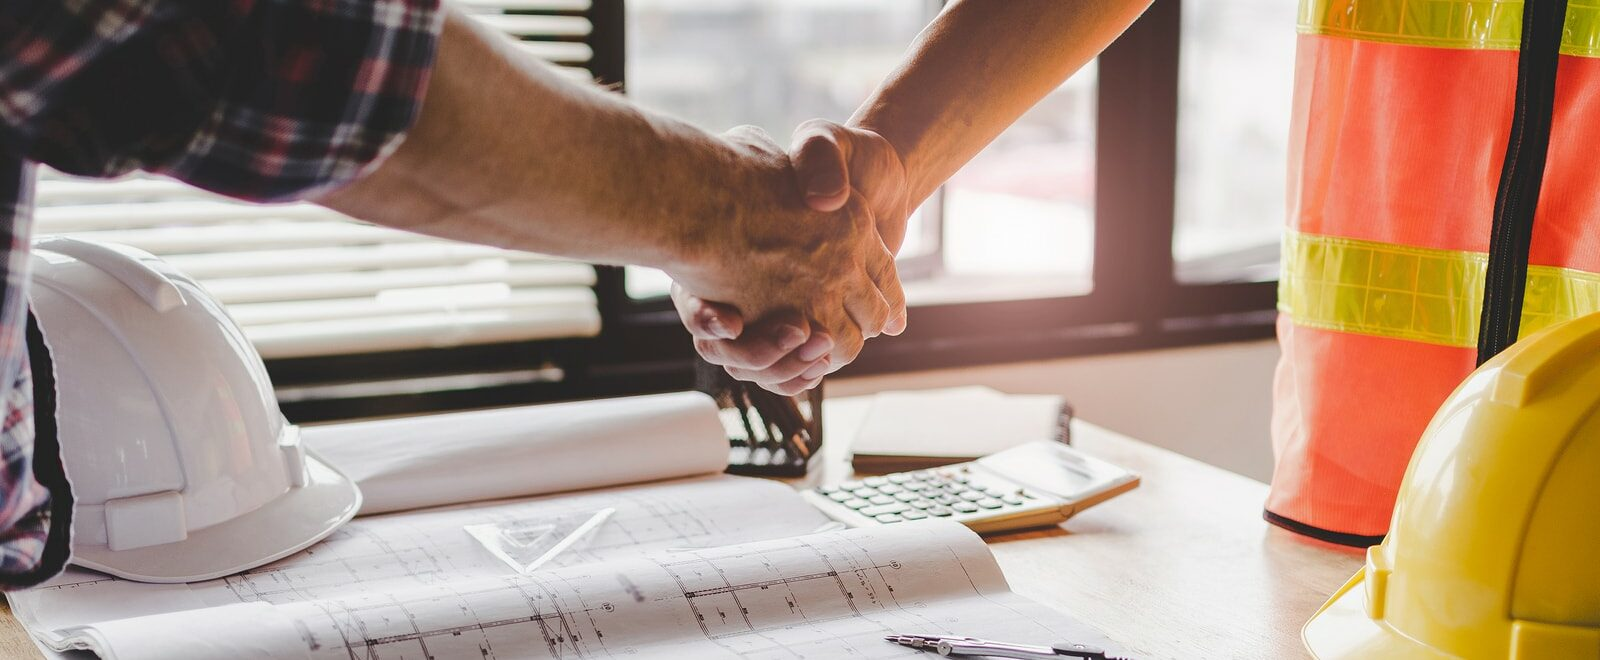 Why Contractors Should Carry Their Own Insurance